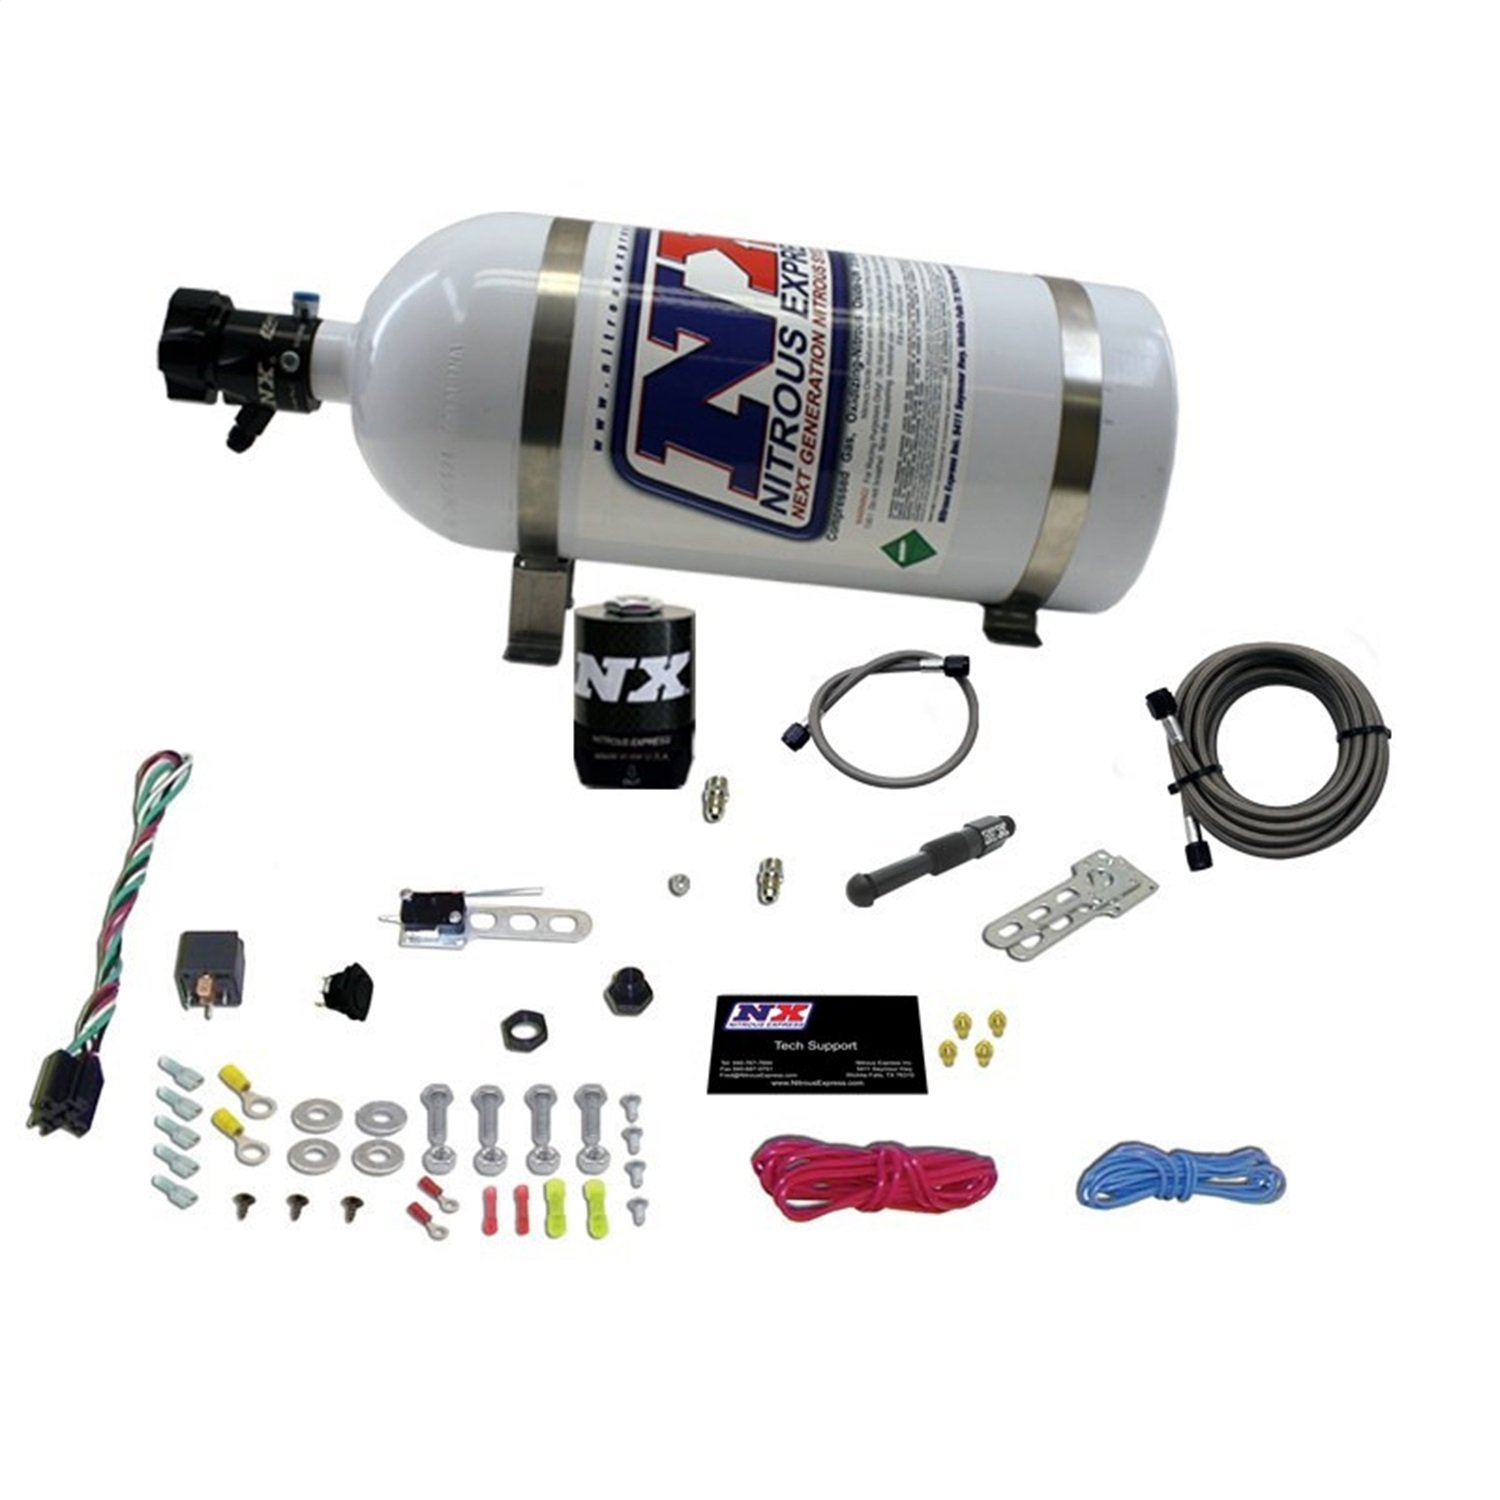 Nitrous Express 21000-10 35-150 HP Dry EFI Single Nozzle System with 10 lbs. Composite Bottle by Nitrous Express